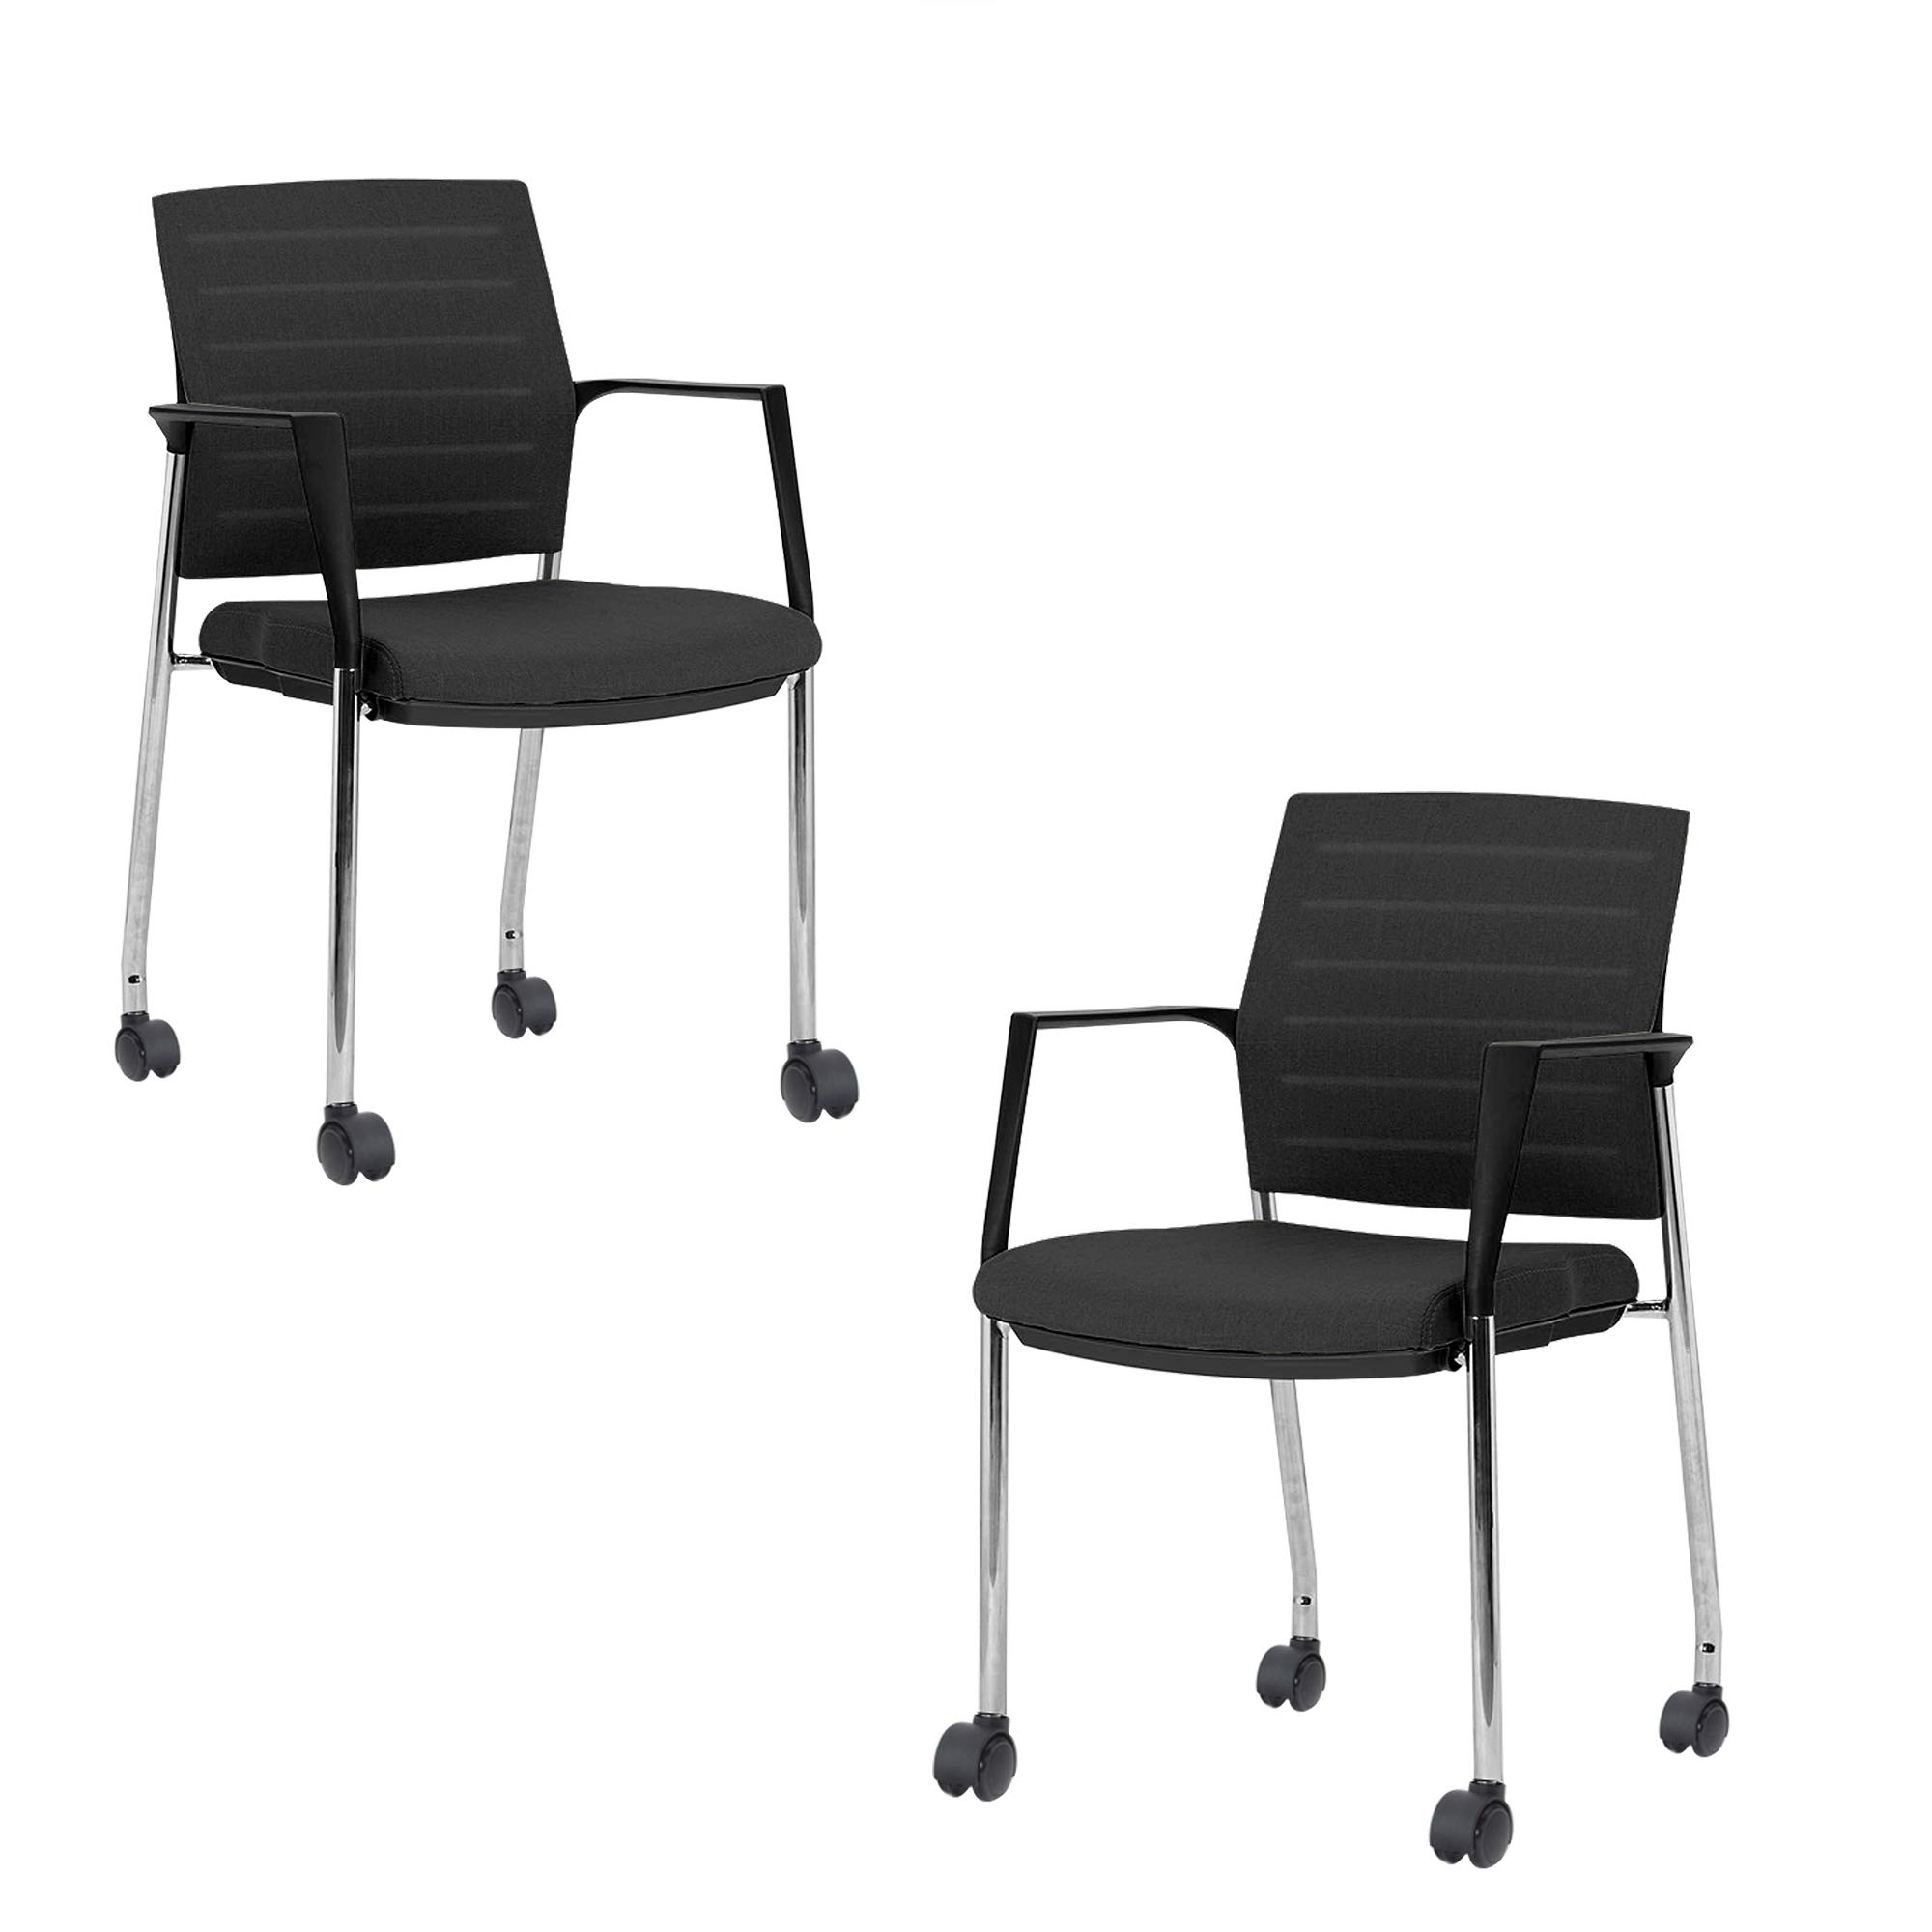 Mesh Upholstered Stacking Office Chair Guest/Reception Chair with Armrests-Modern Stackable Office Chair, Black 2 Sets (Black, Caster)